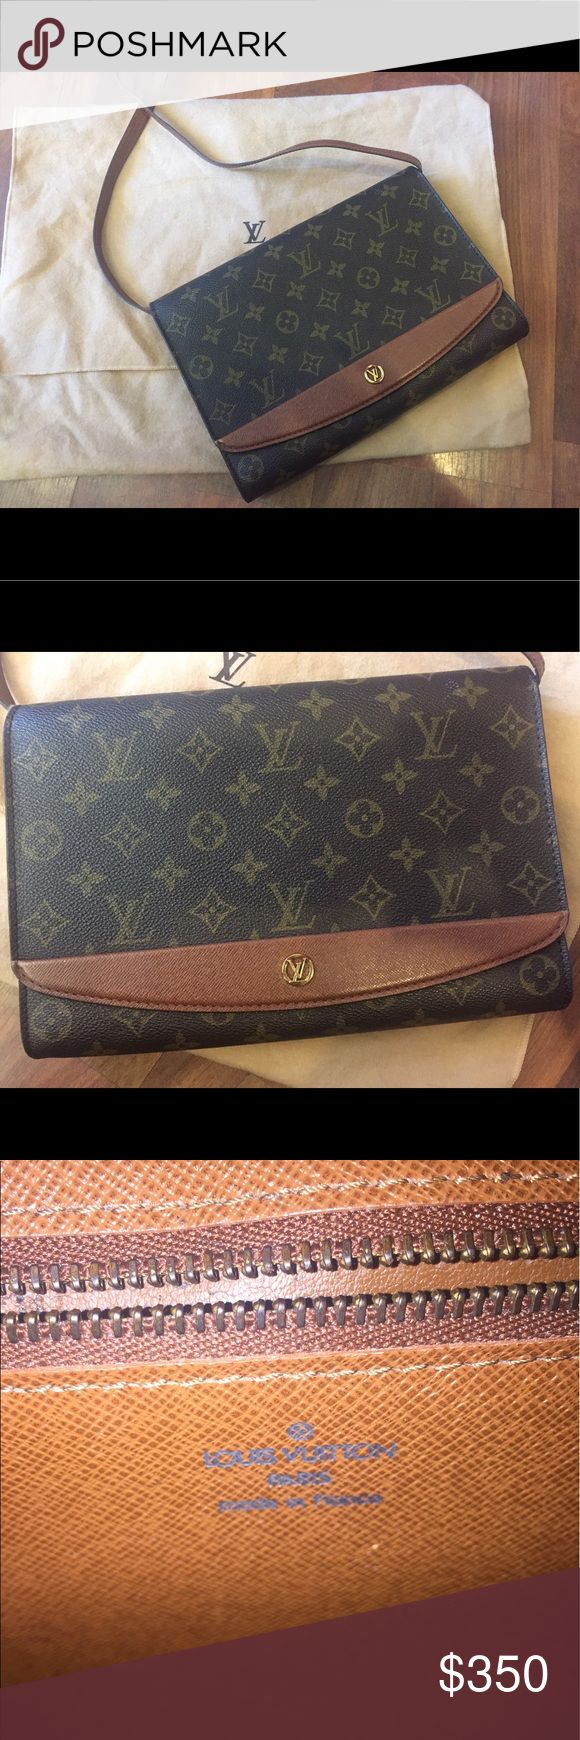 Authentic Louis Vuitton Shoulder Bag Authentic Vintage Louis Vuitton Leather Shoulder Bag, with dust bag, purchased at Neiman Marcus. Inside pocket has wear, other than that it is excellent condition. Pocket can be restored through Louis Vuitton, if you wish. $350 firm, no discounts. Louis Vuitton Bags Shoulder Bags